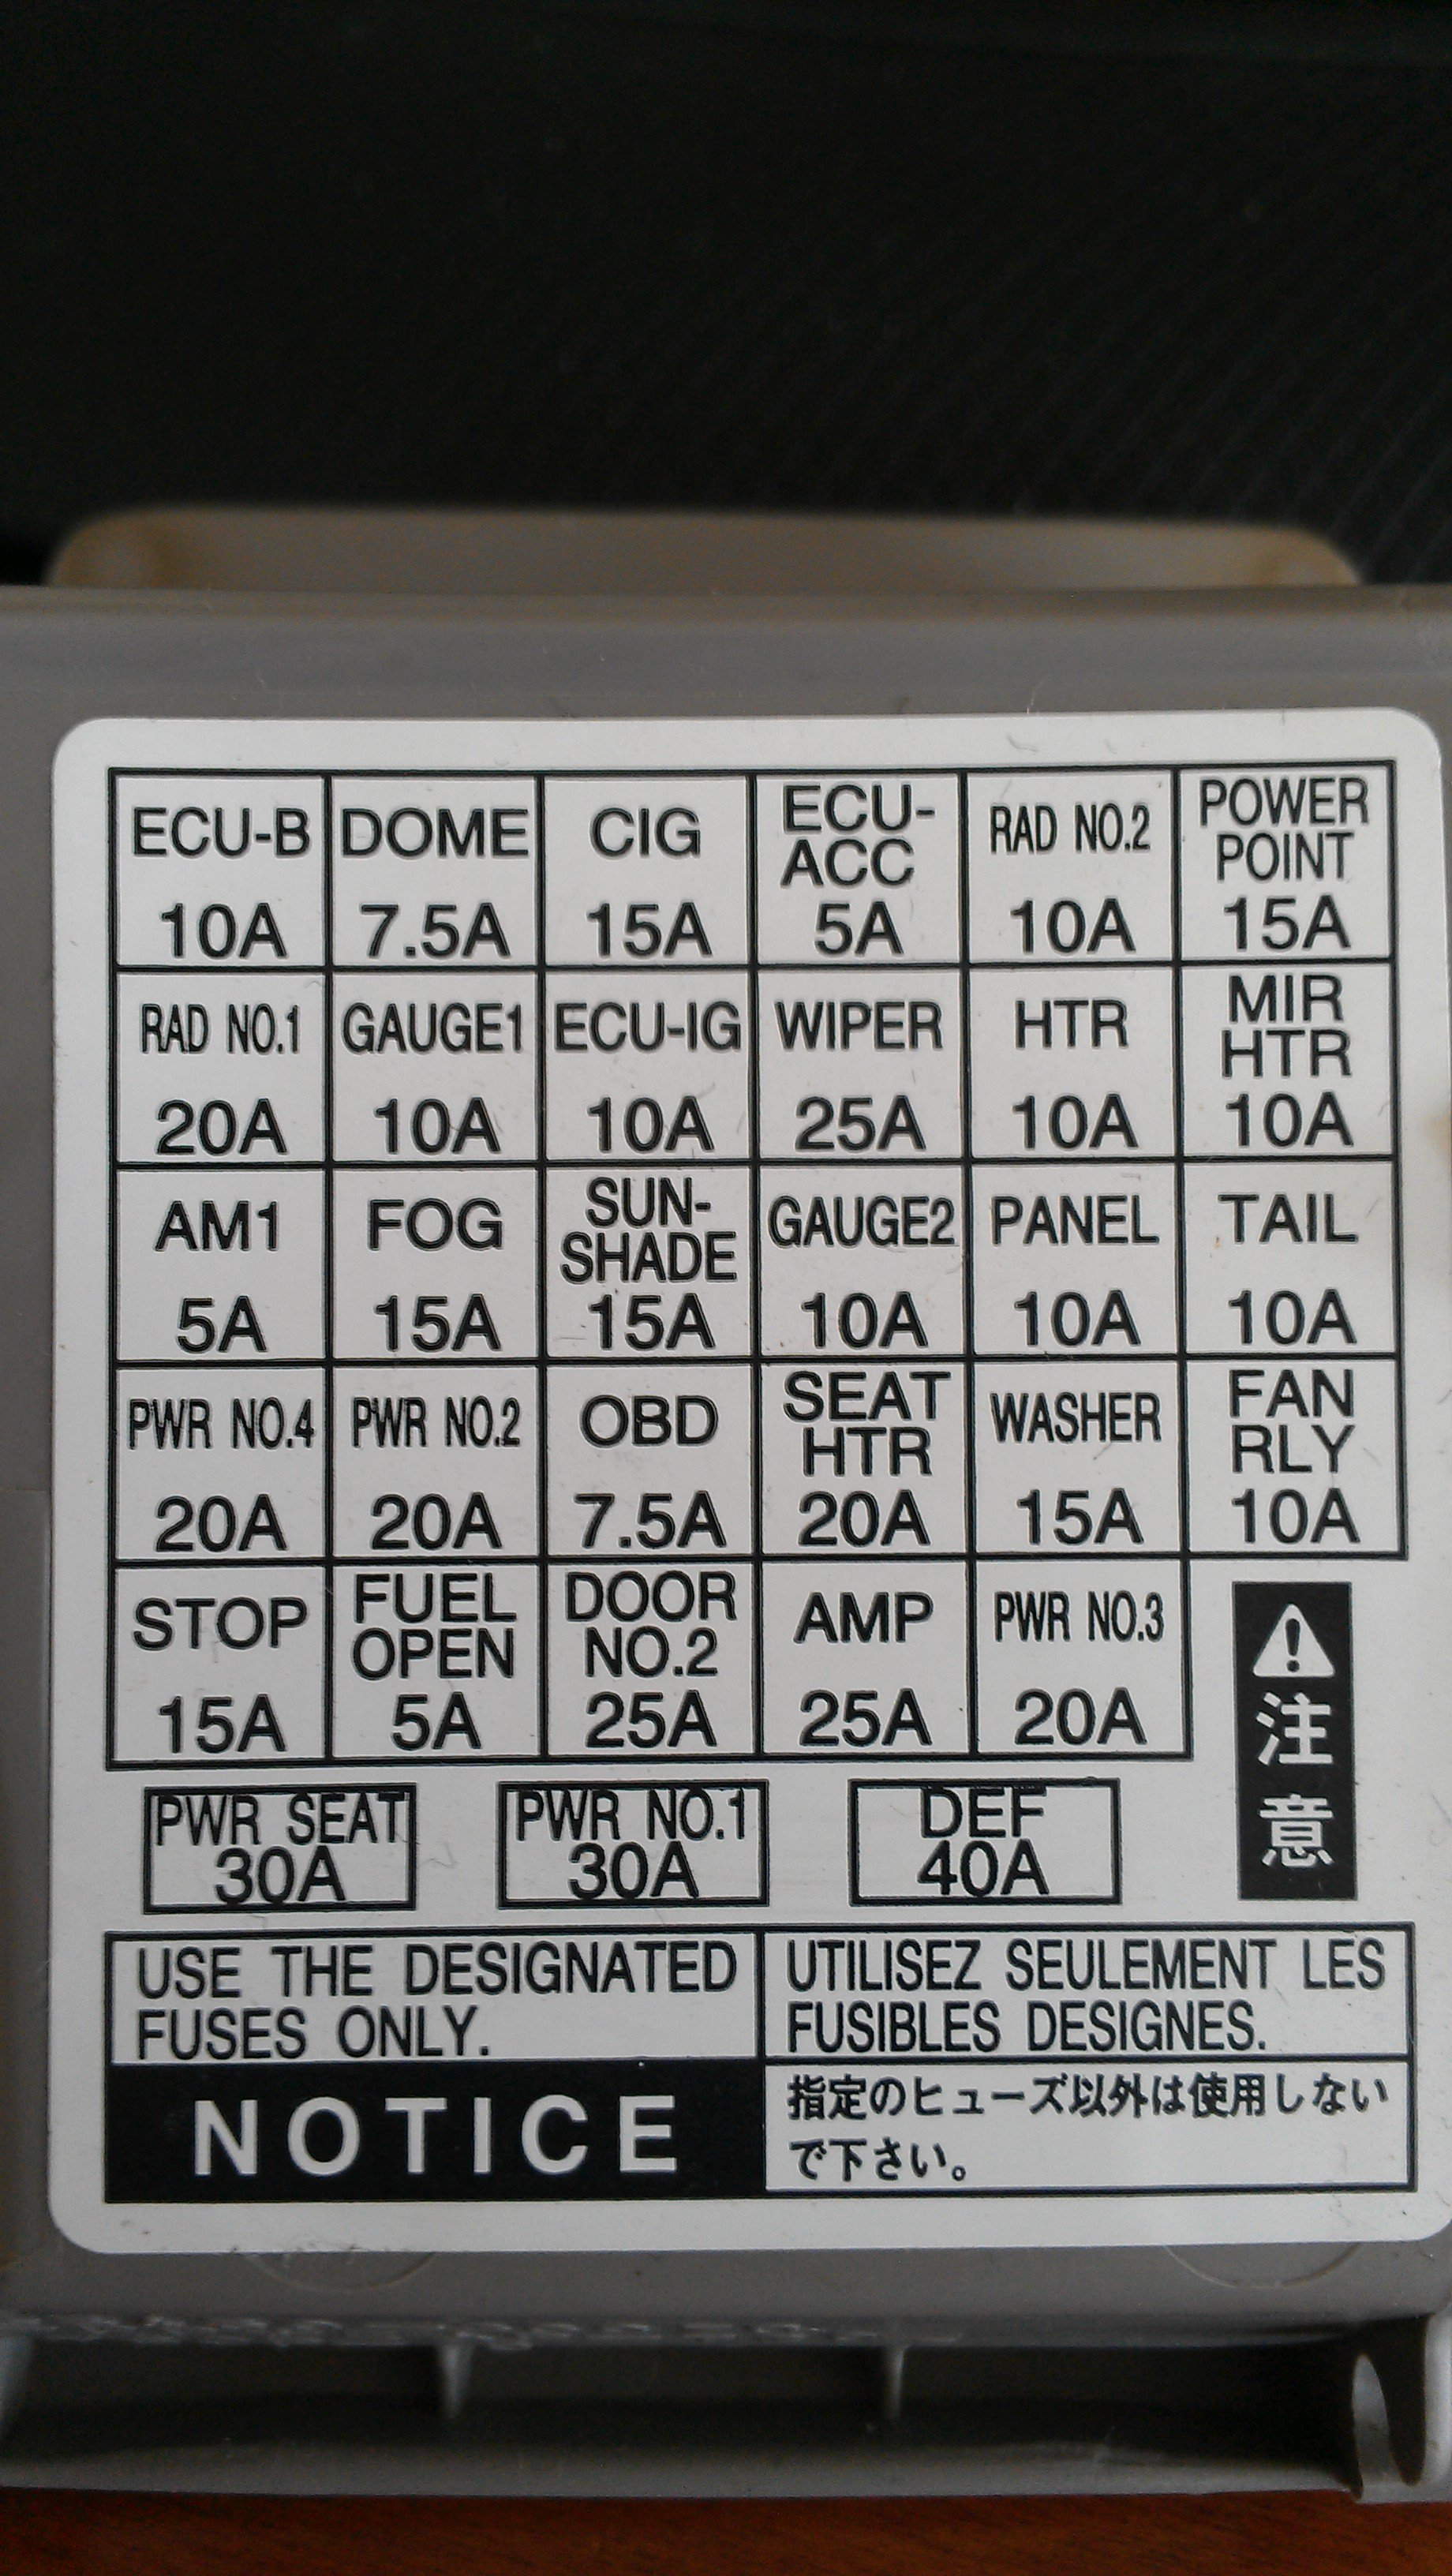 2006 lexus es330 fuse box diagram wiring diagram sample 2006 lexus es330 fuse diagram wiring diagram features 2005 lexus es 330 fuse box wiring diagram